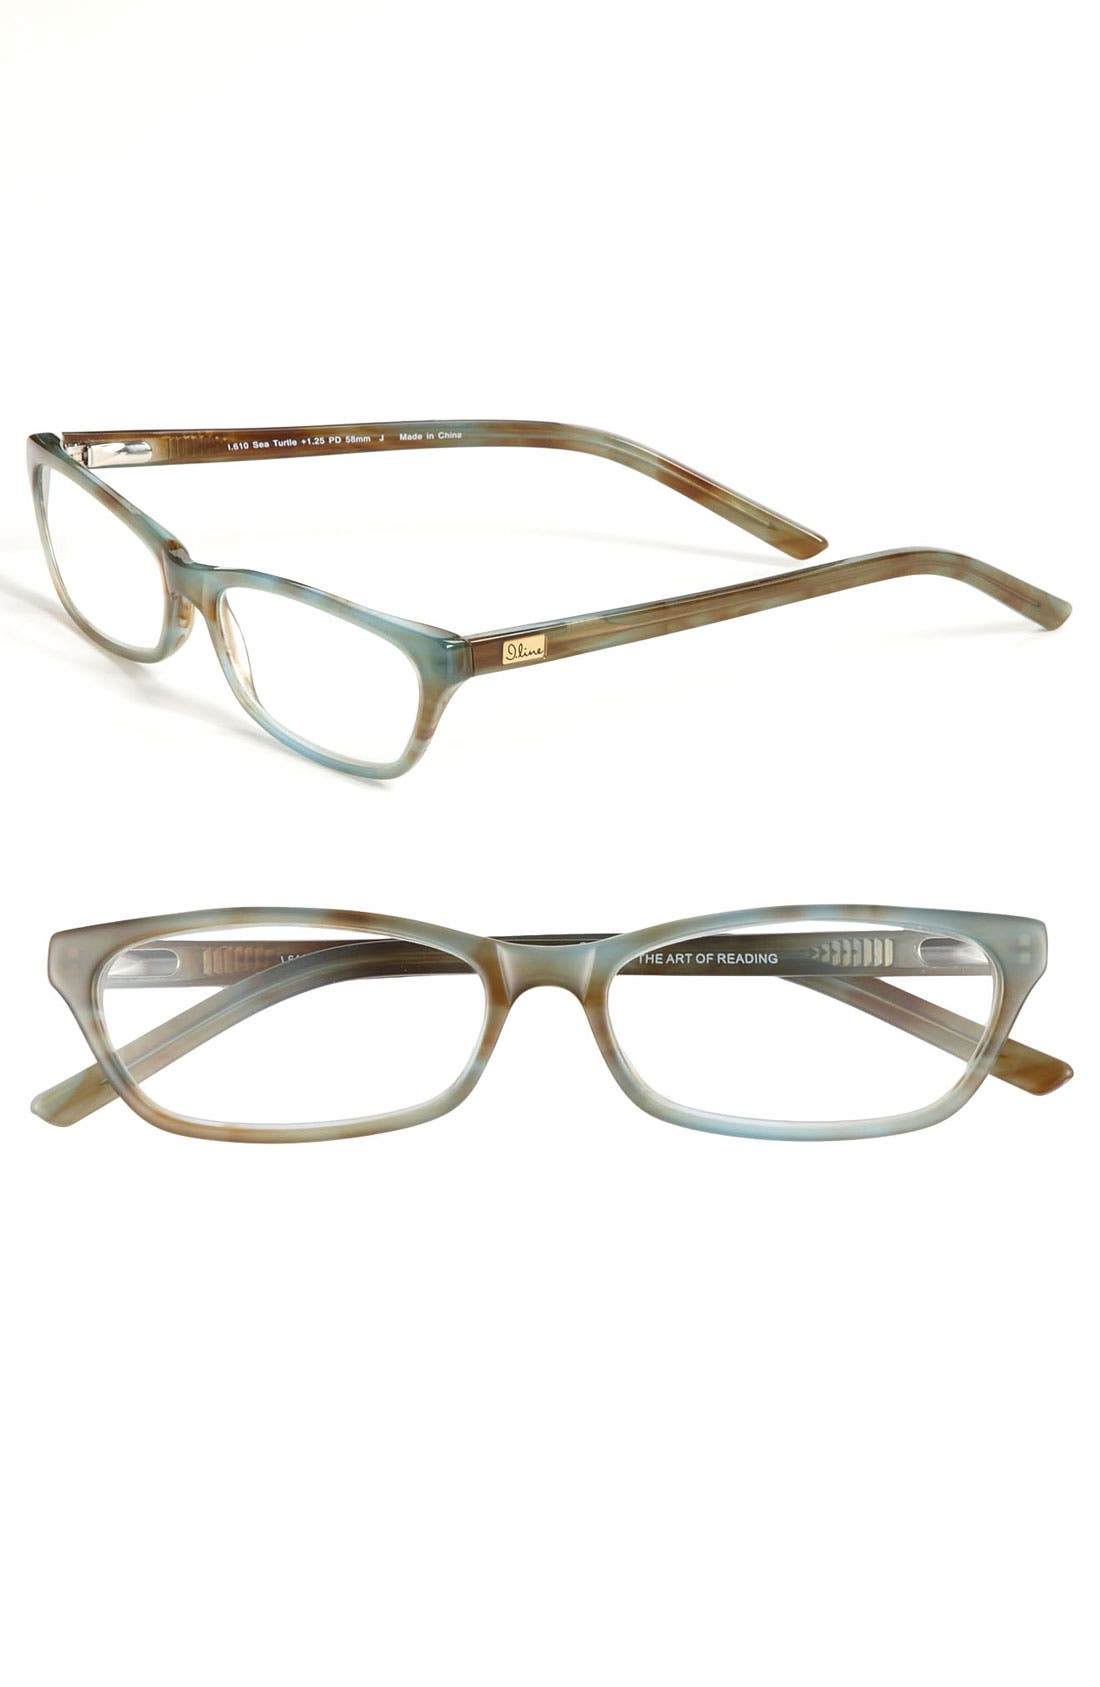 Alternate Image 1 Selected - I Line Eyewear 'Sea Turtle' 54mm Reading Glasses